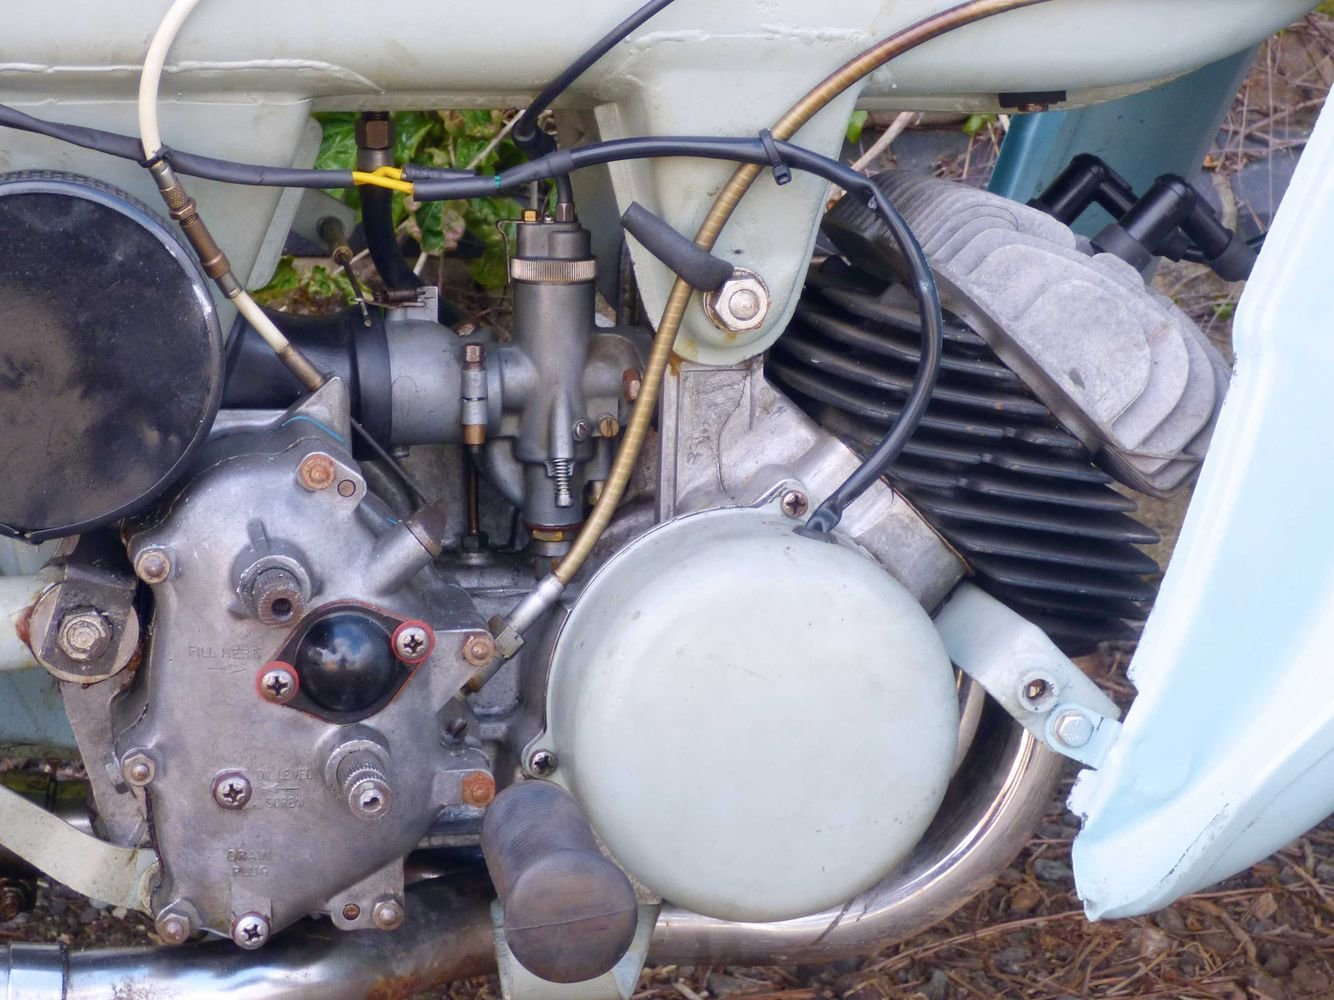 1960 Ariel Leader 250cc For Sale (picture 3 of 6)